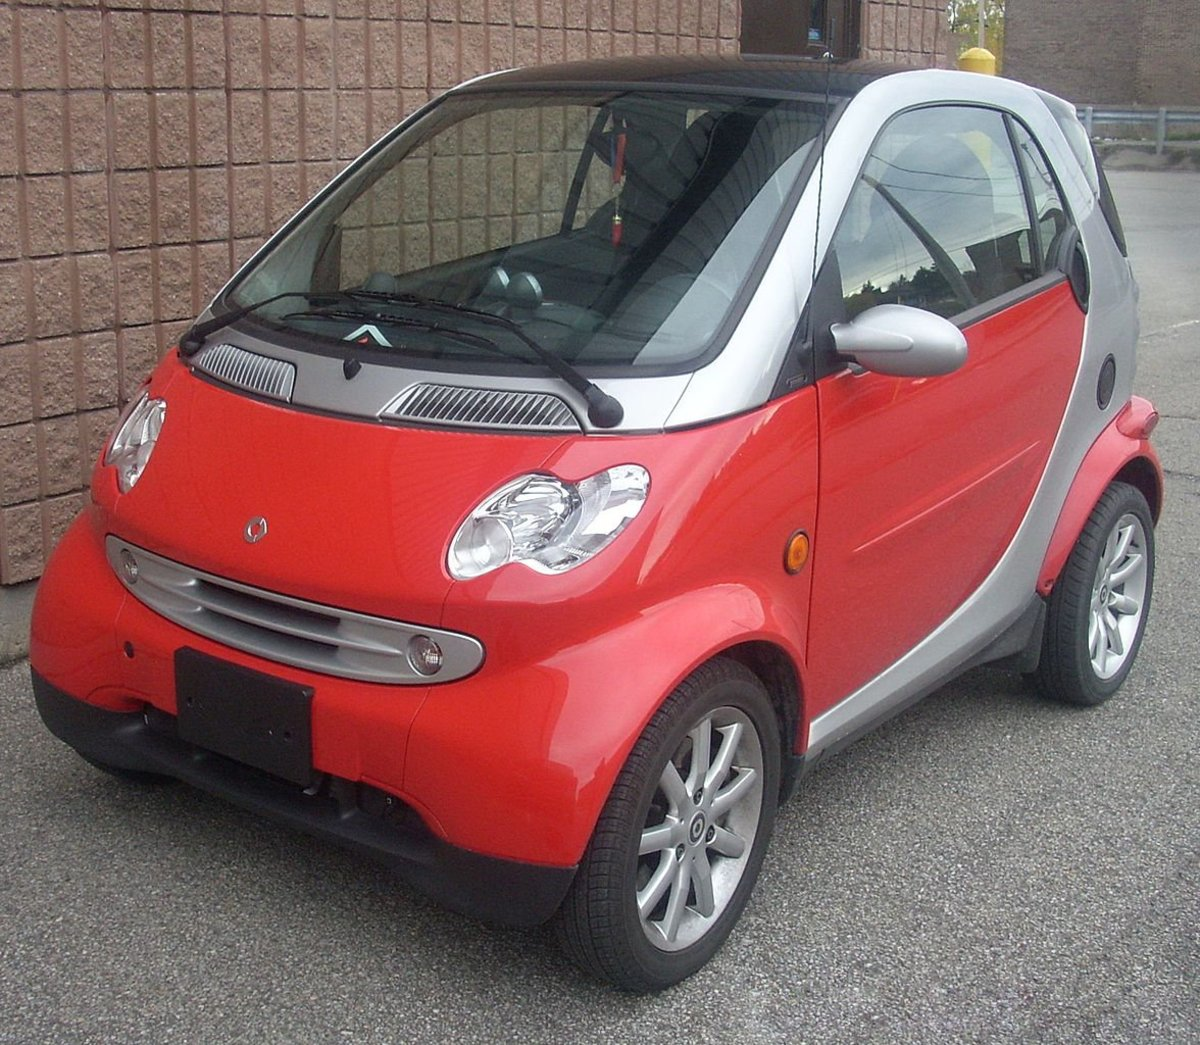 The Advantages and Disadvantages of Small Cars